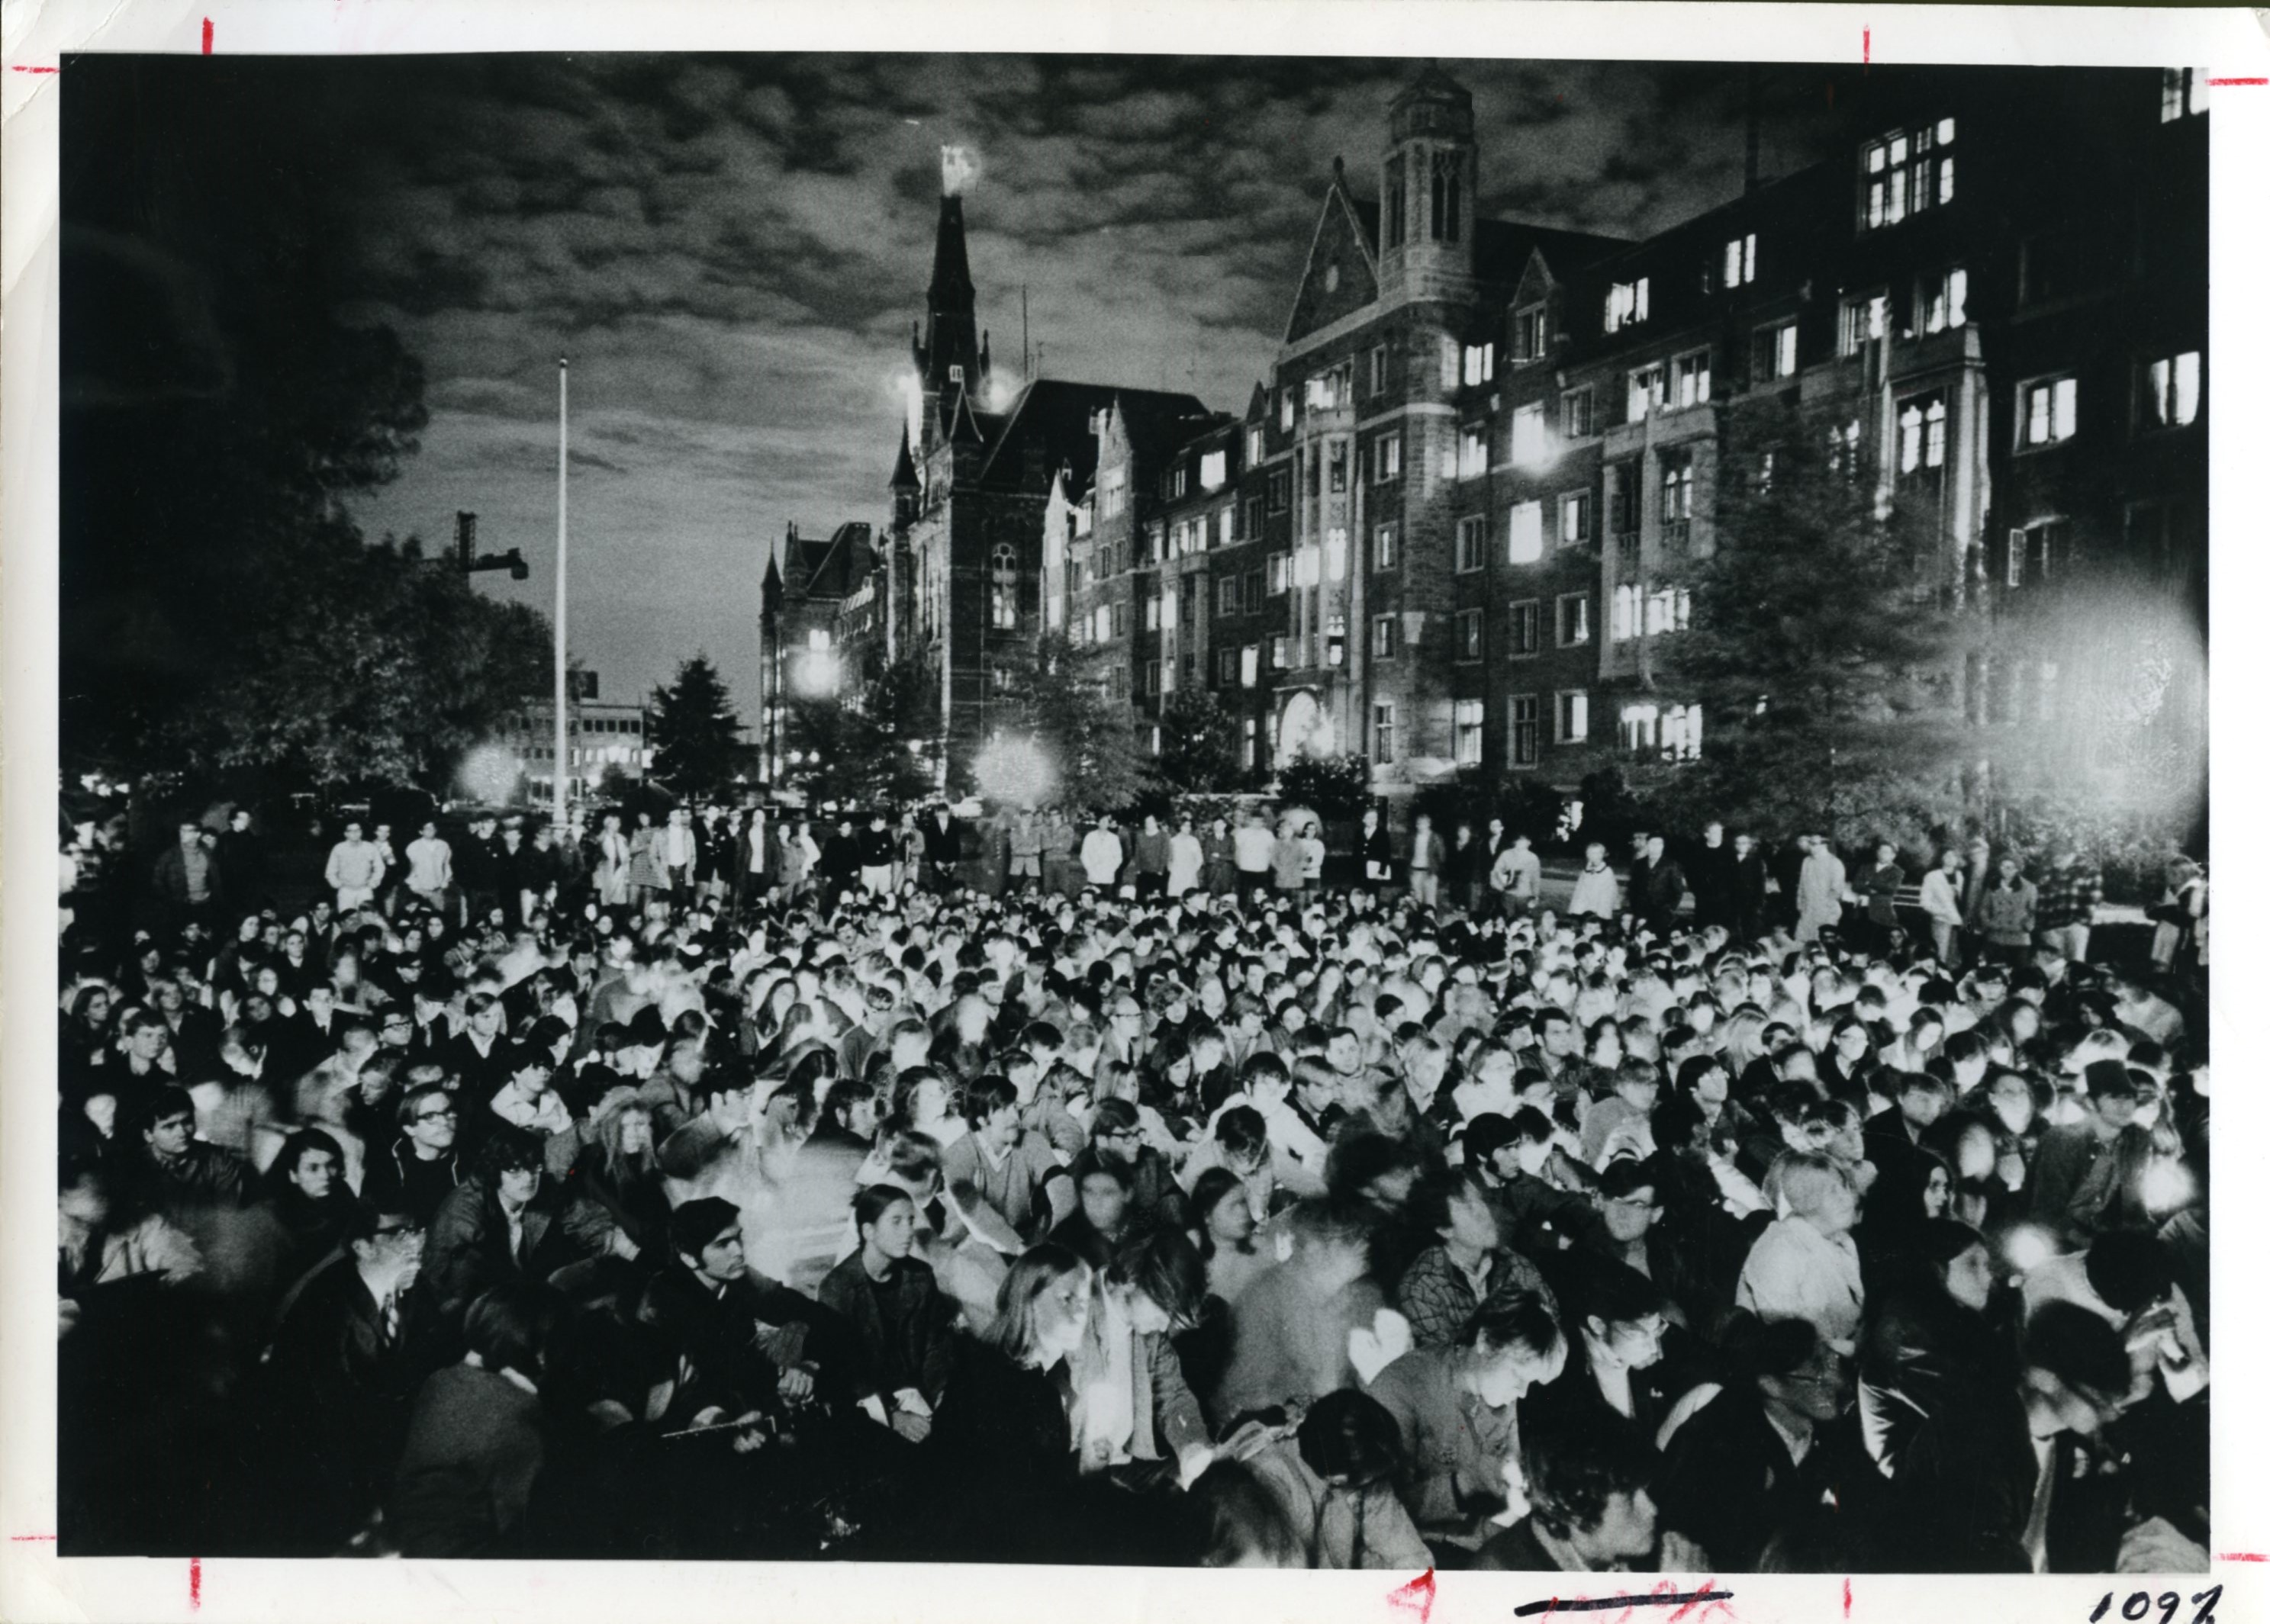 Vigil held on the campus of Georgetown University before the National Moratorium to End the Vietnam War in 1969.